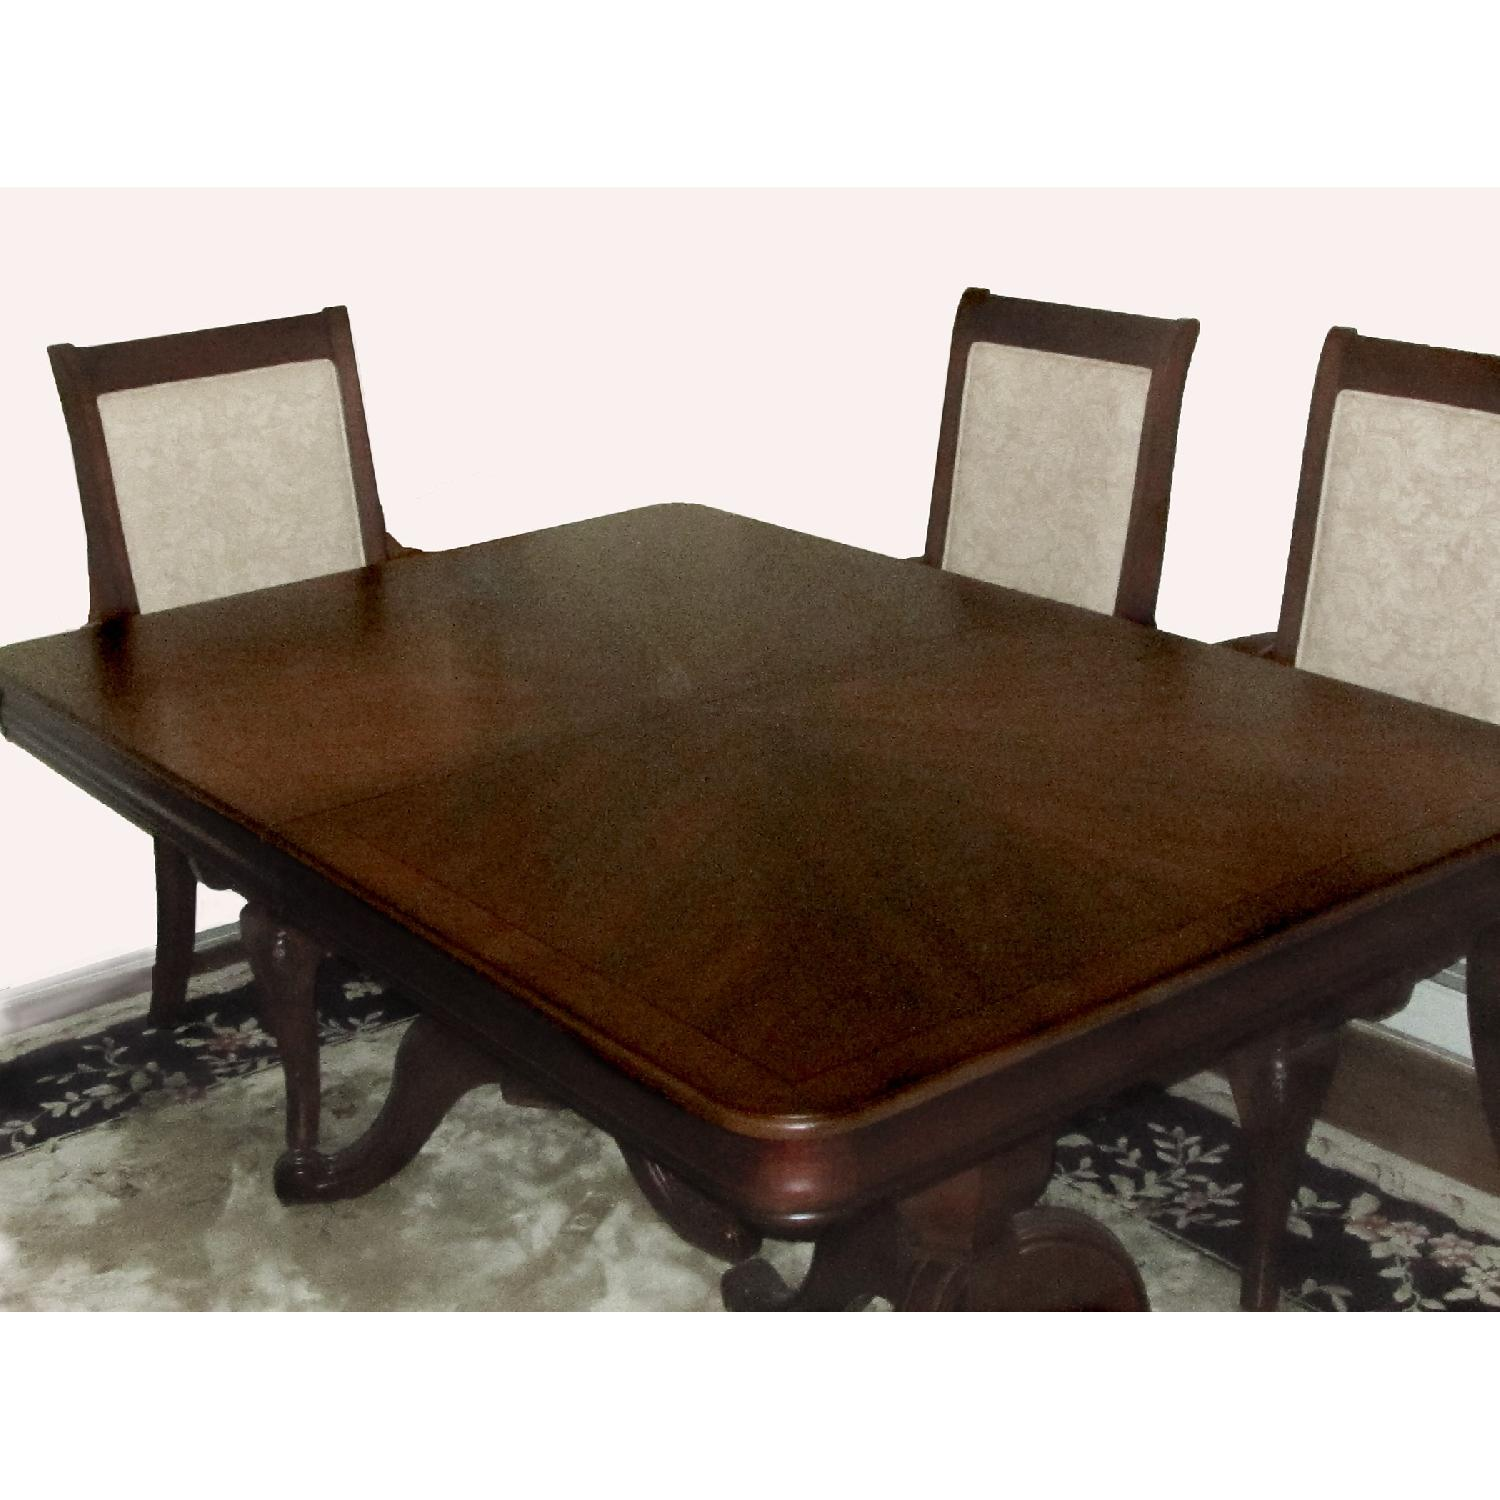 Raymour flanigan mahogany dining table w 6 chairs aptdeco for Dining table with 6 chairs